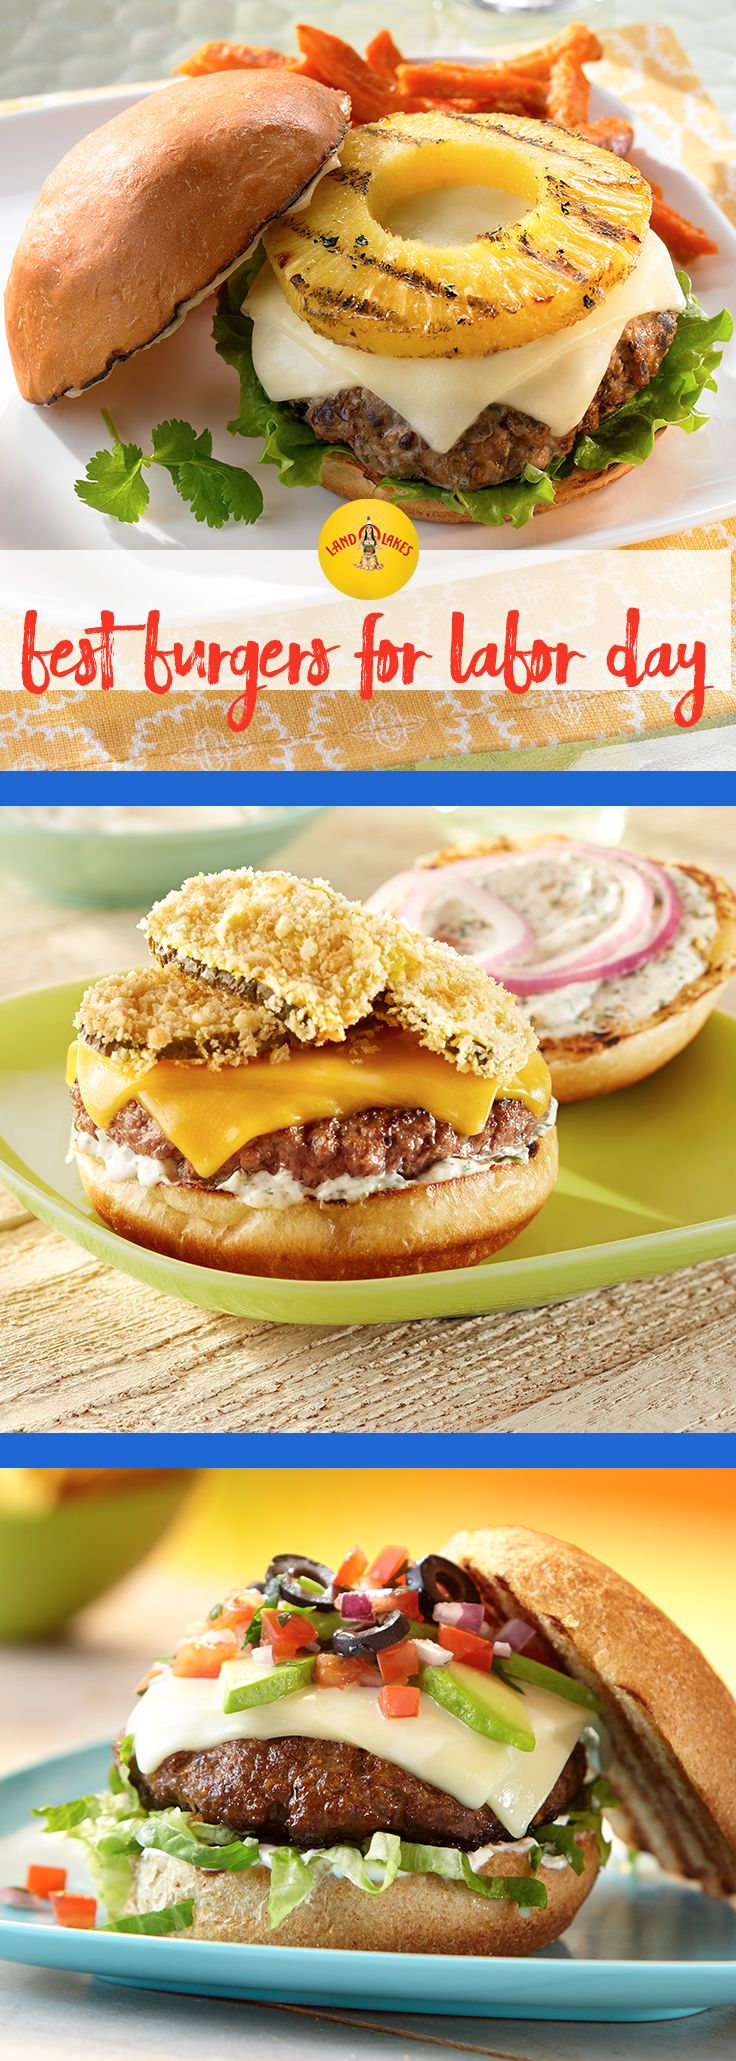 The patty itself is just the beginning to the perfect Labor Day burger. Start with chicken, pork, veggies, a portabella mushroom or good old-fashioned beef. Then heap on the flavors from there, with cheese, onions, salsa and even fruit.